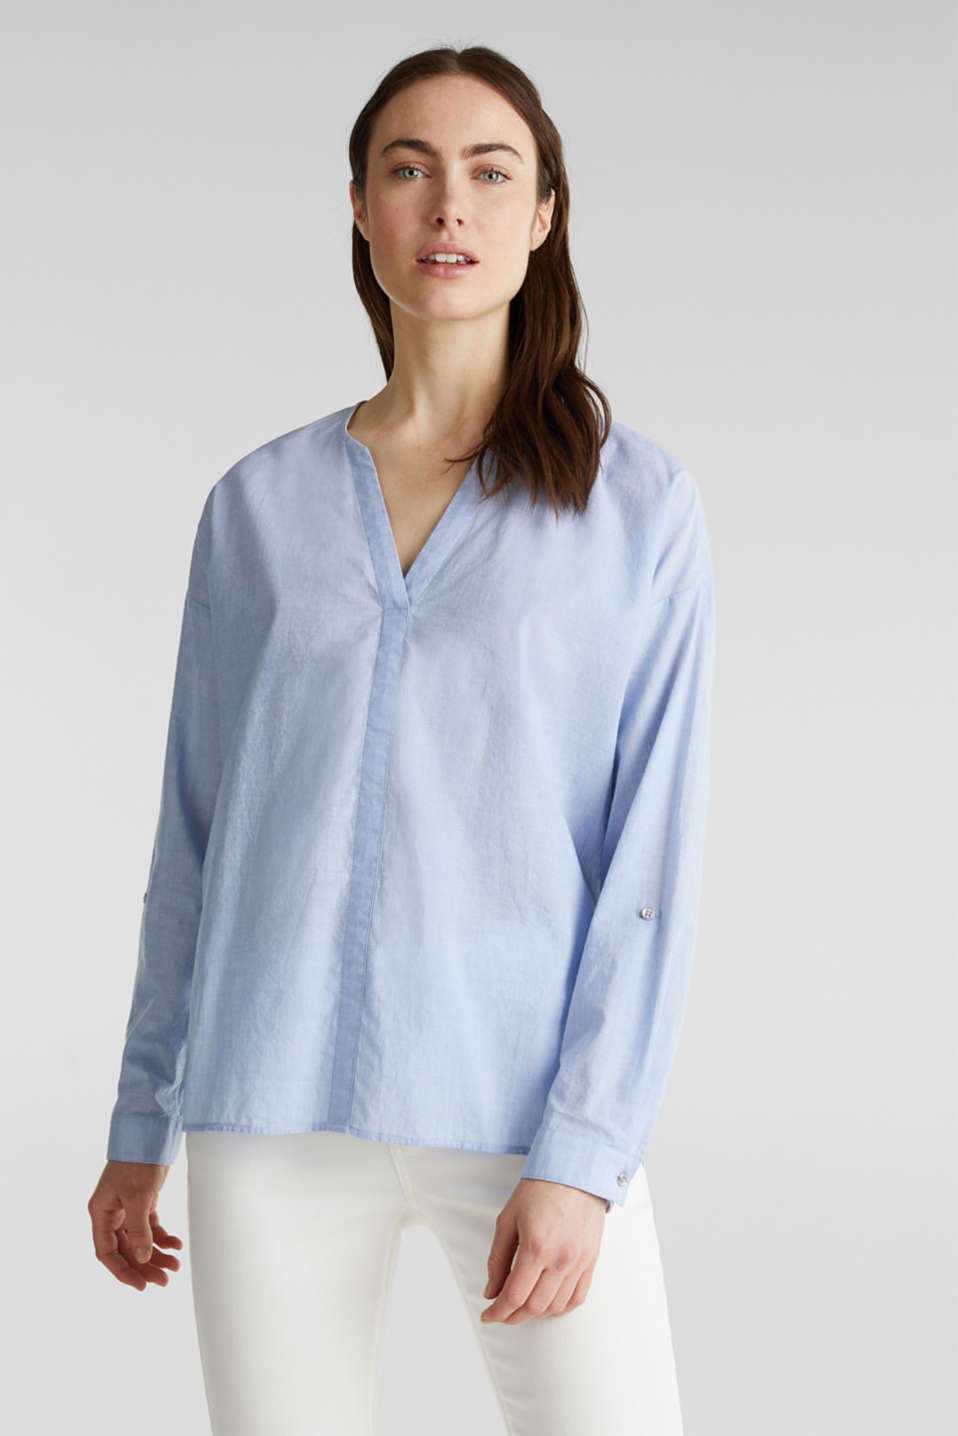 Esprit - Blouse with turn-up sleeves, 100% cotton